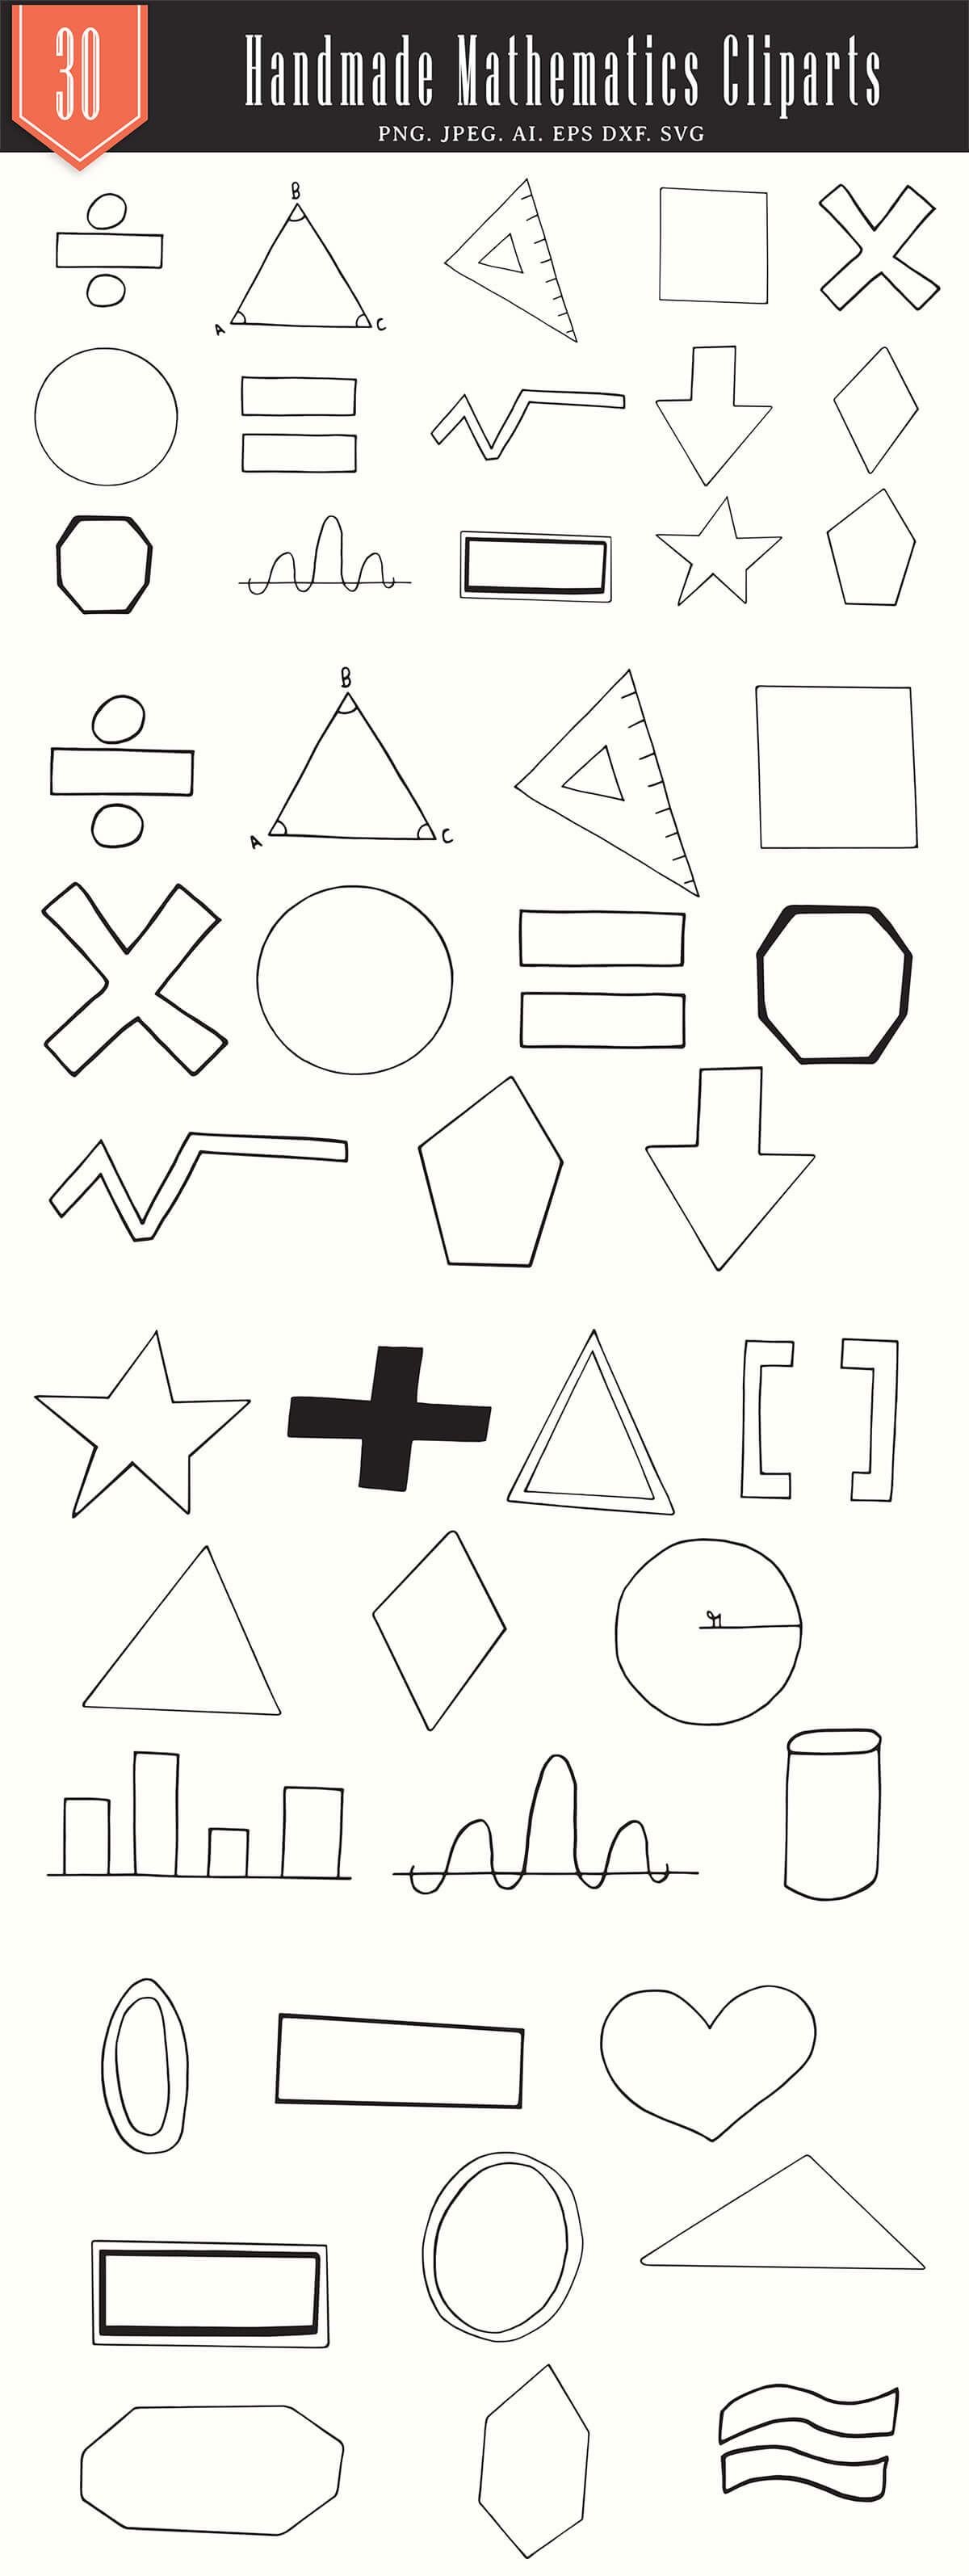 25+ Free Handmade Mathematics Cliparts